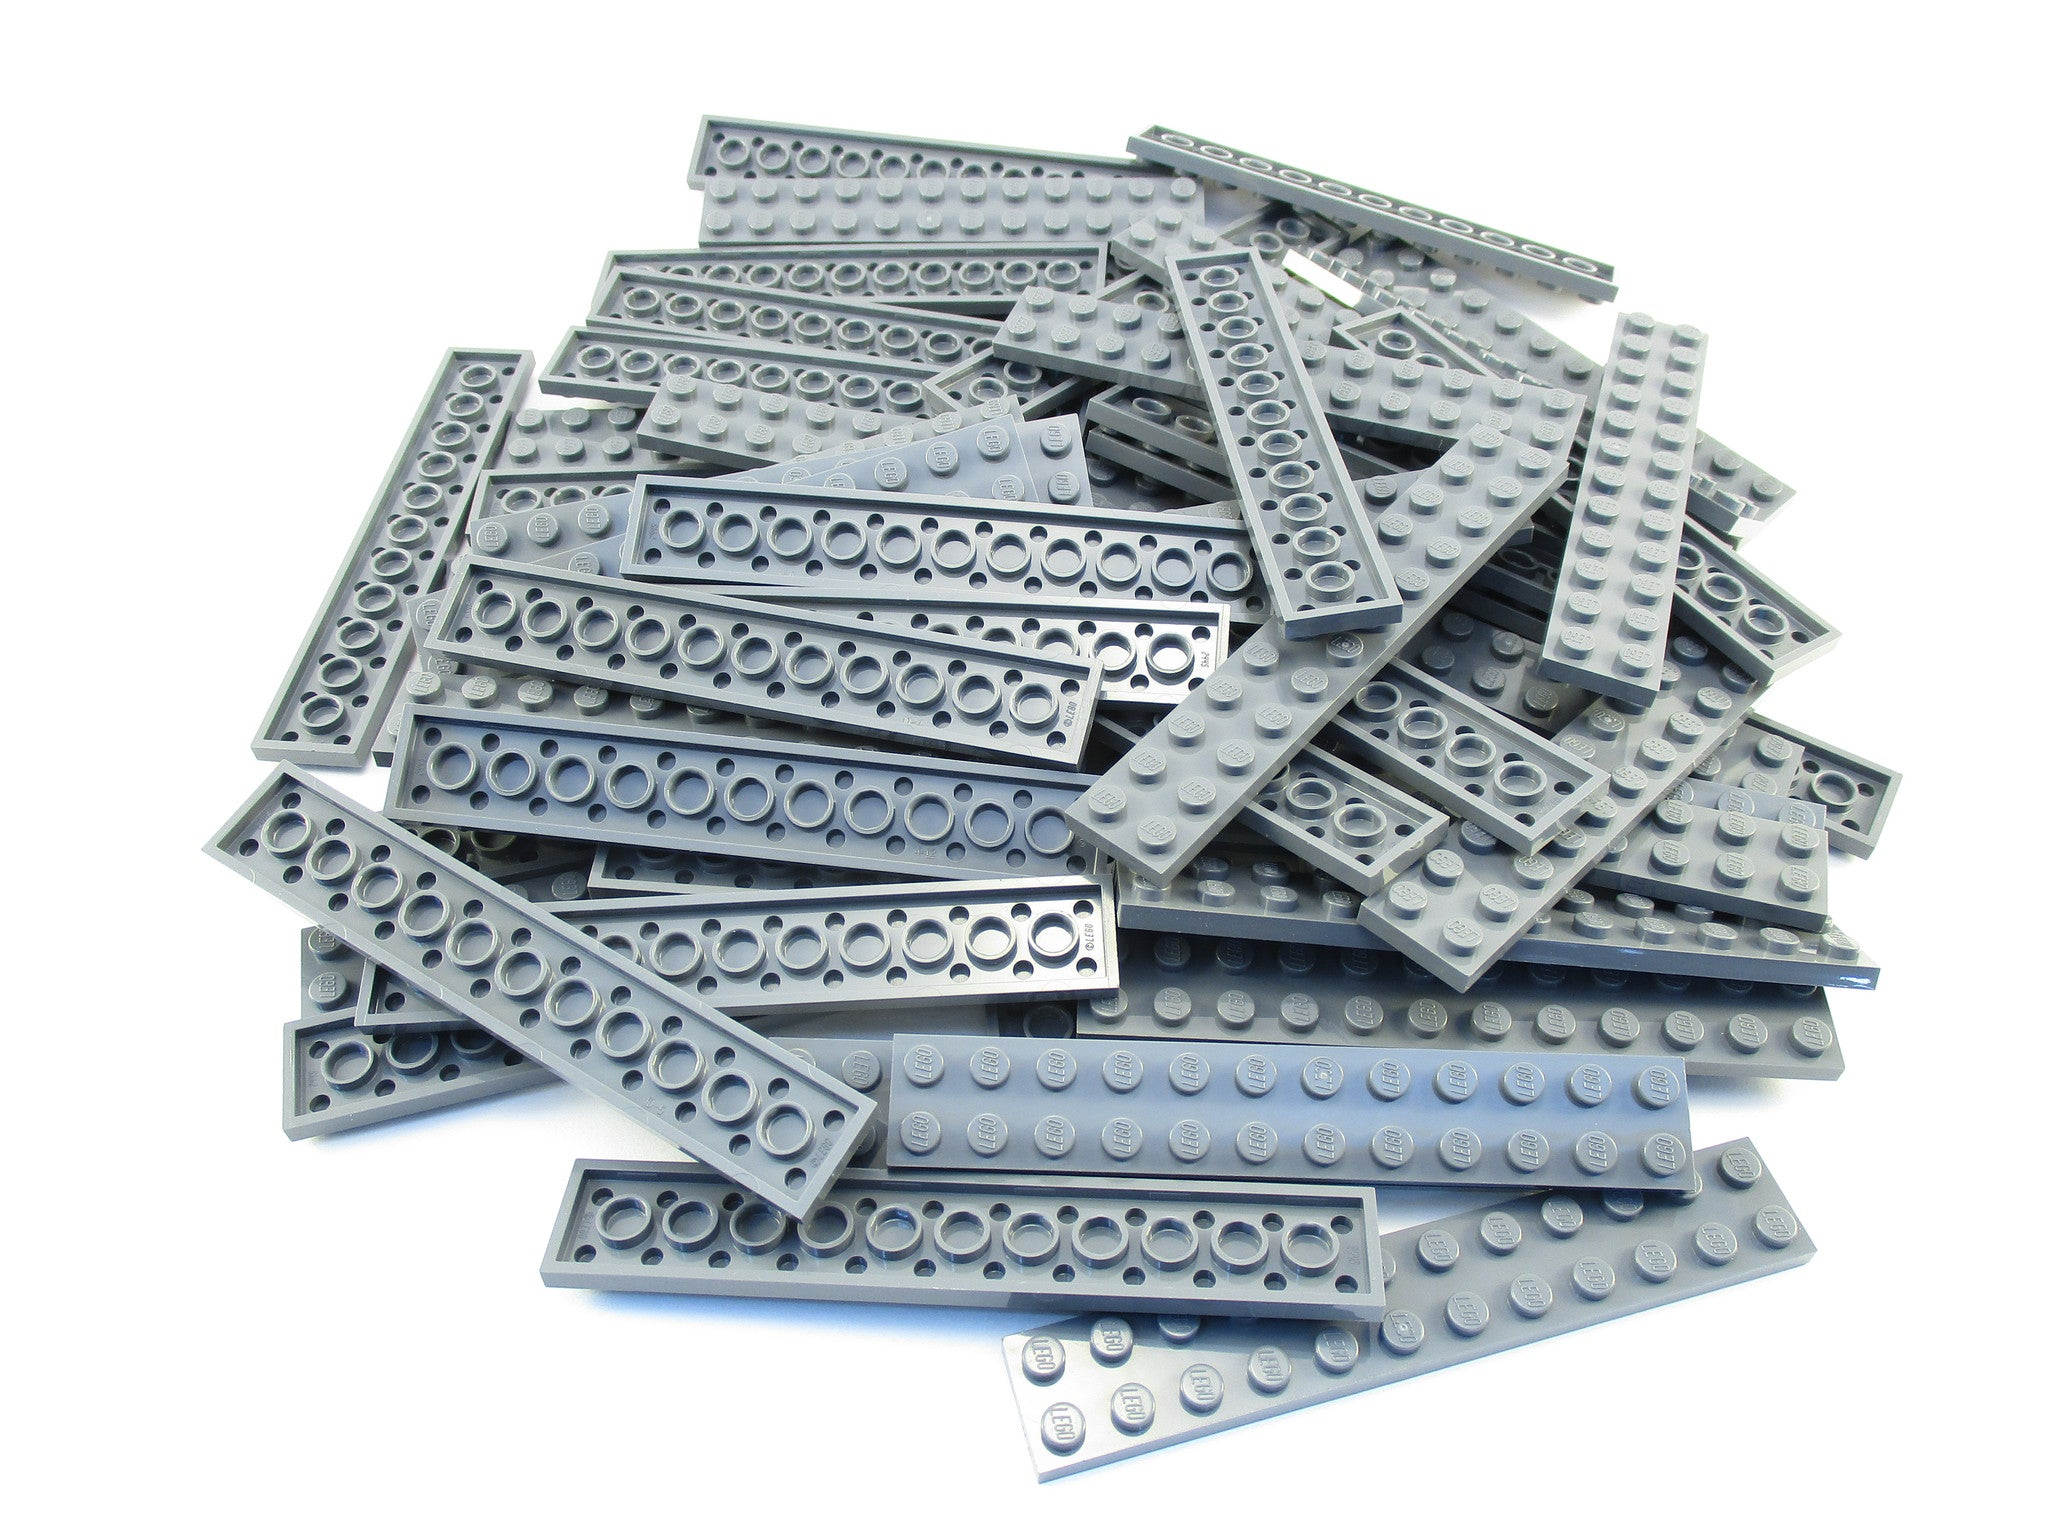 LEGO Dark Bluish Grey Plate 2x12 Lot of 50 Parts Pieces 2445 Gray